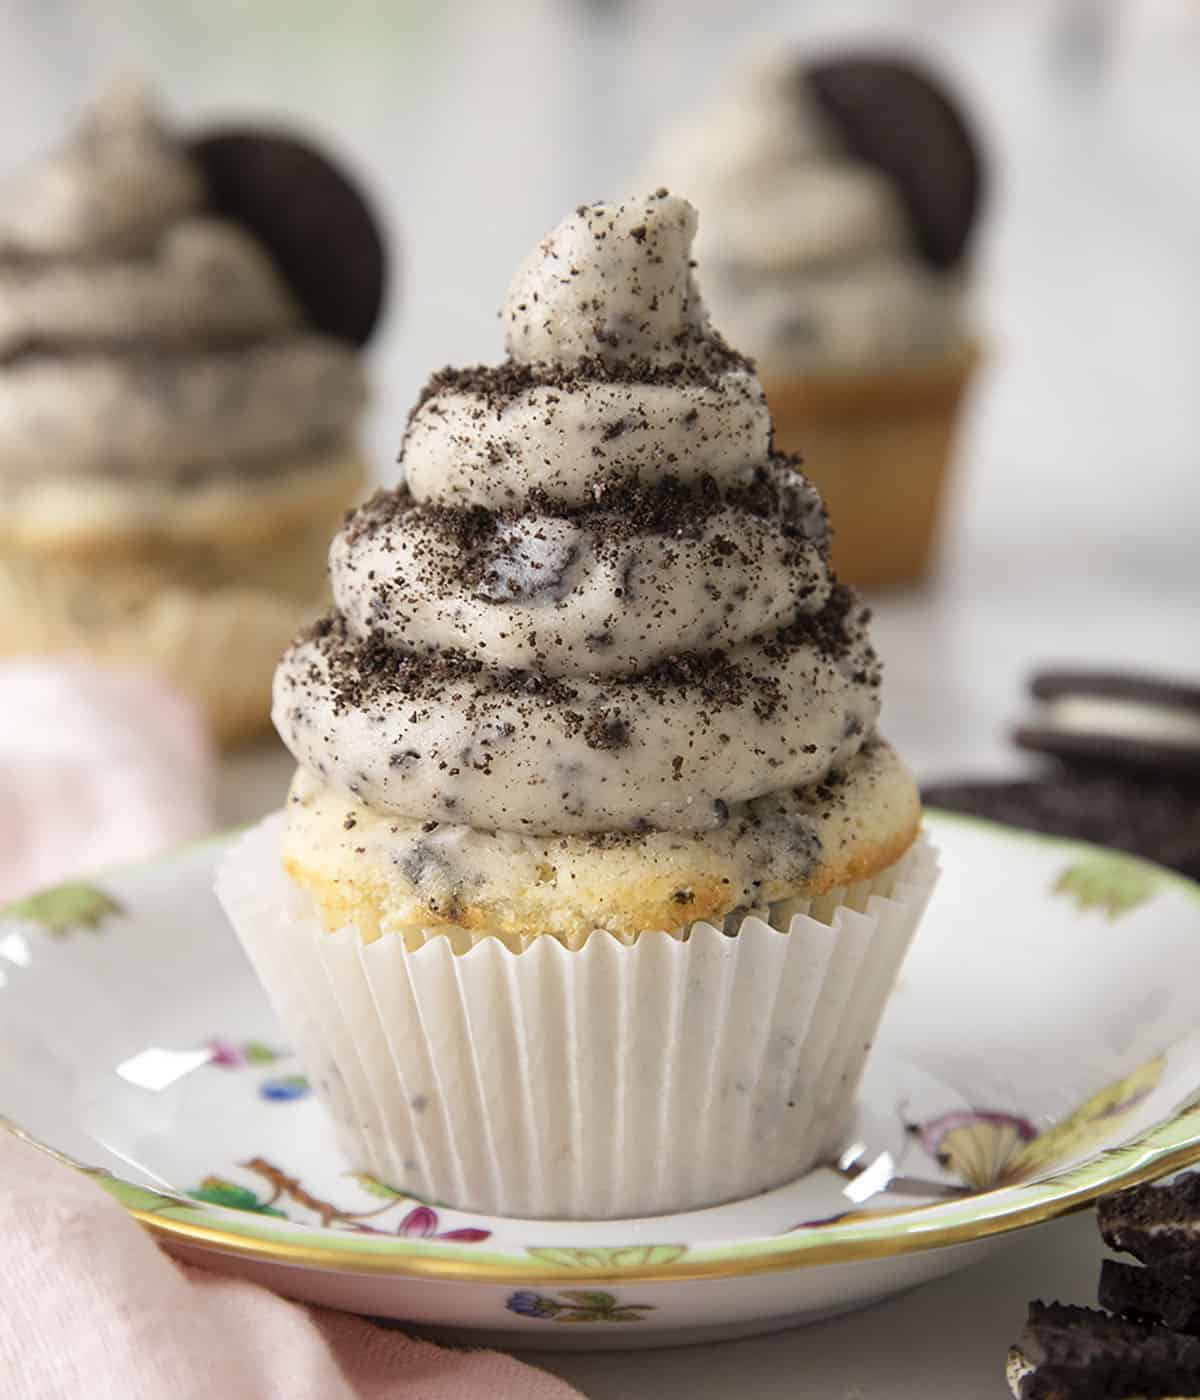 An Oreo cupcake topped with a nice swirl of Oreo buttercream on a plate.